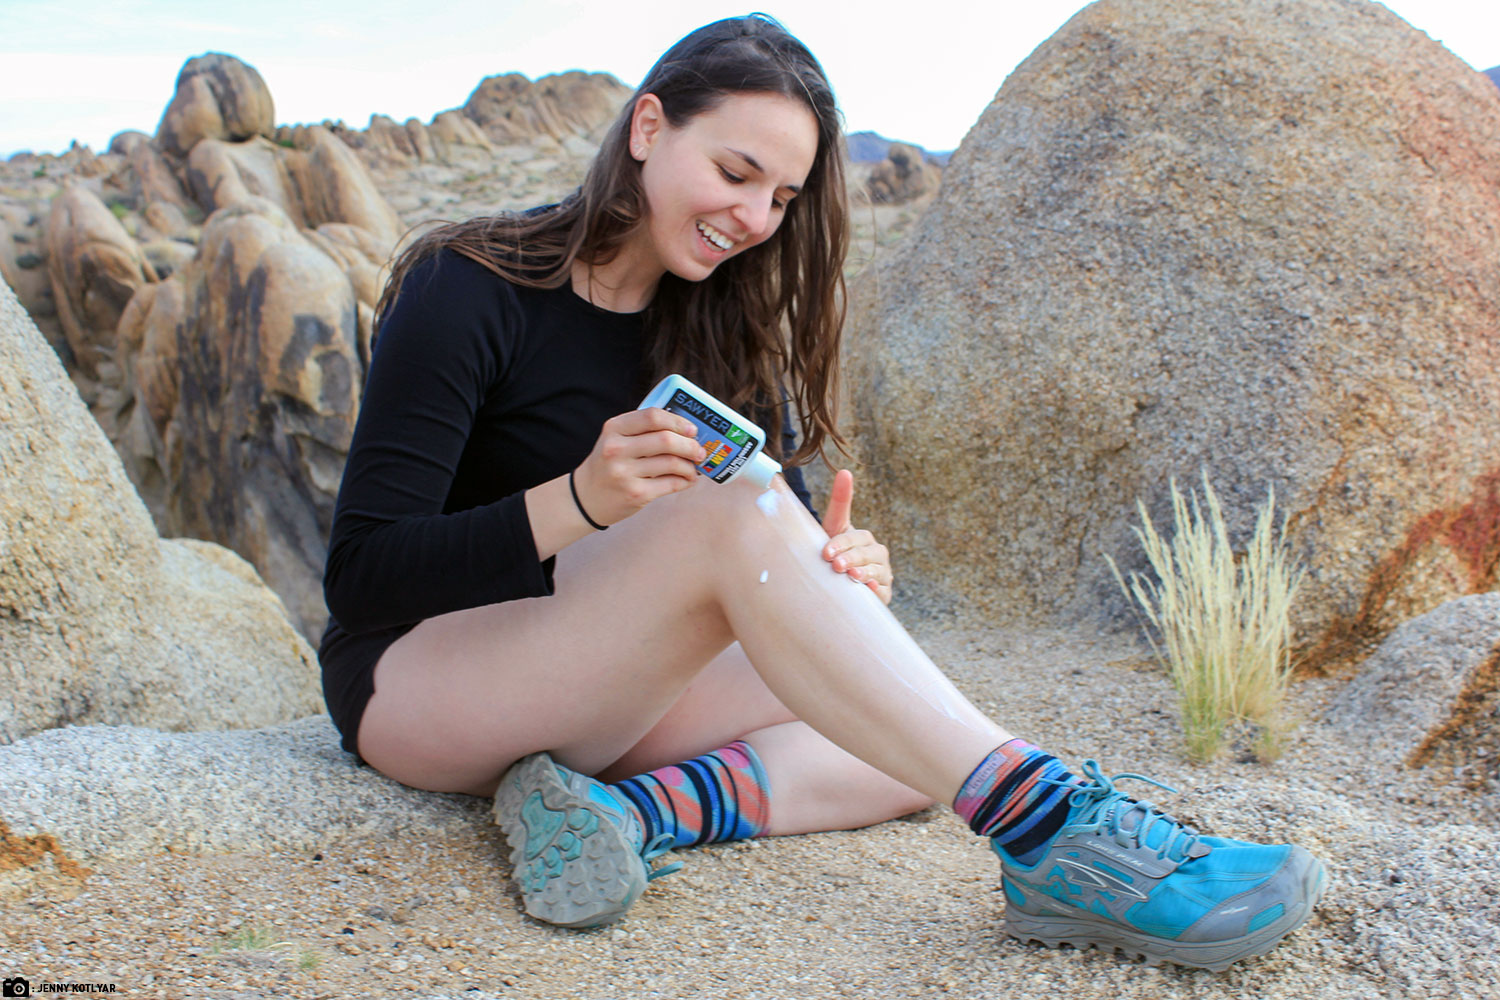 A Woman Applying Sawyer Controlled Release Topical Insect Repellent While out on an Adventure